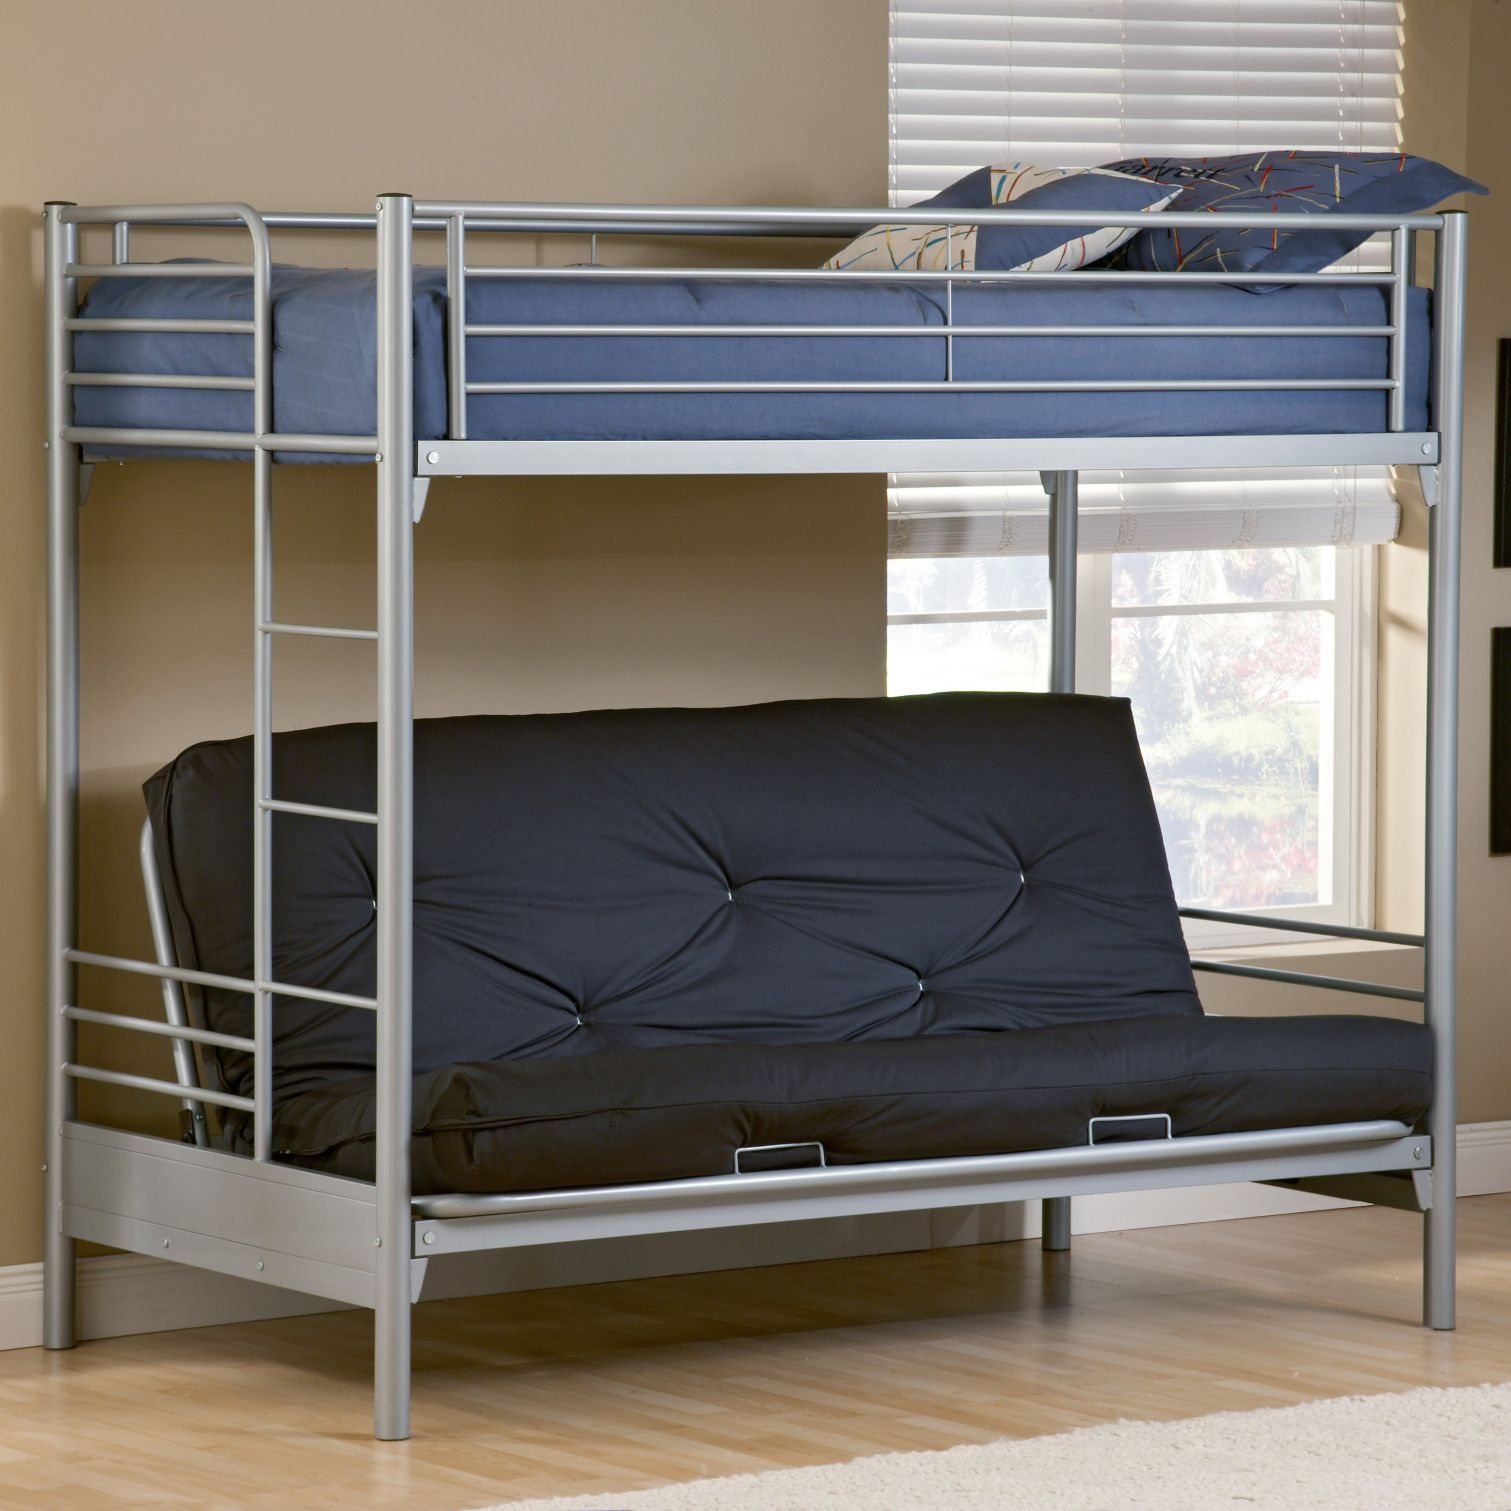 Double loft bed ideas  Bunk Bed Futon Mattress  What is the Best Interior Paint Check more